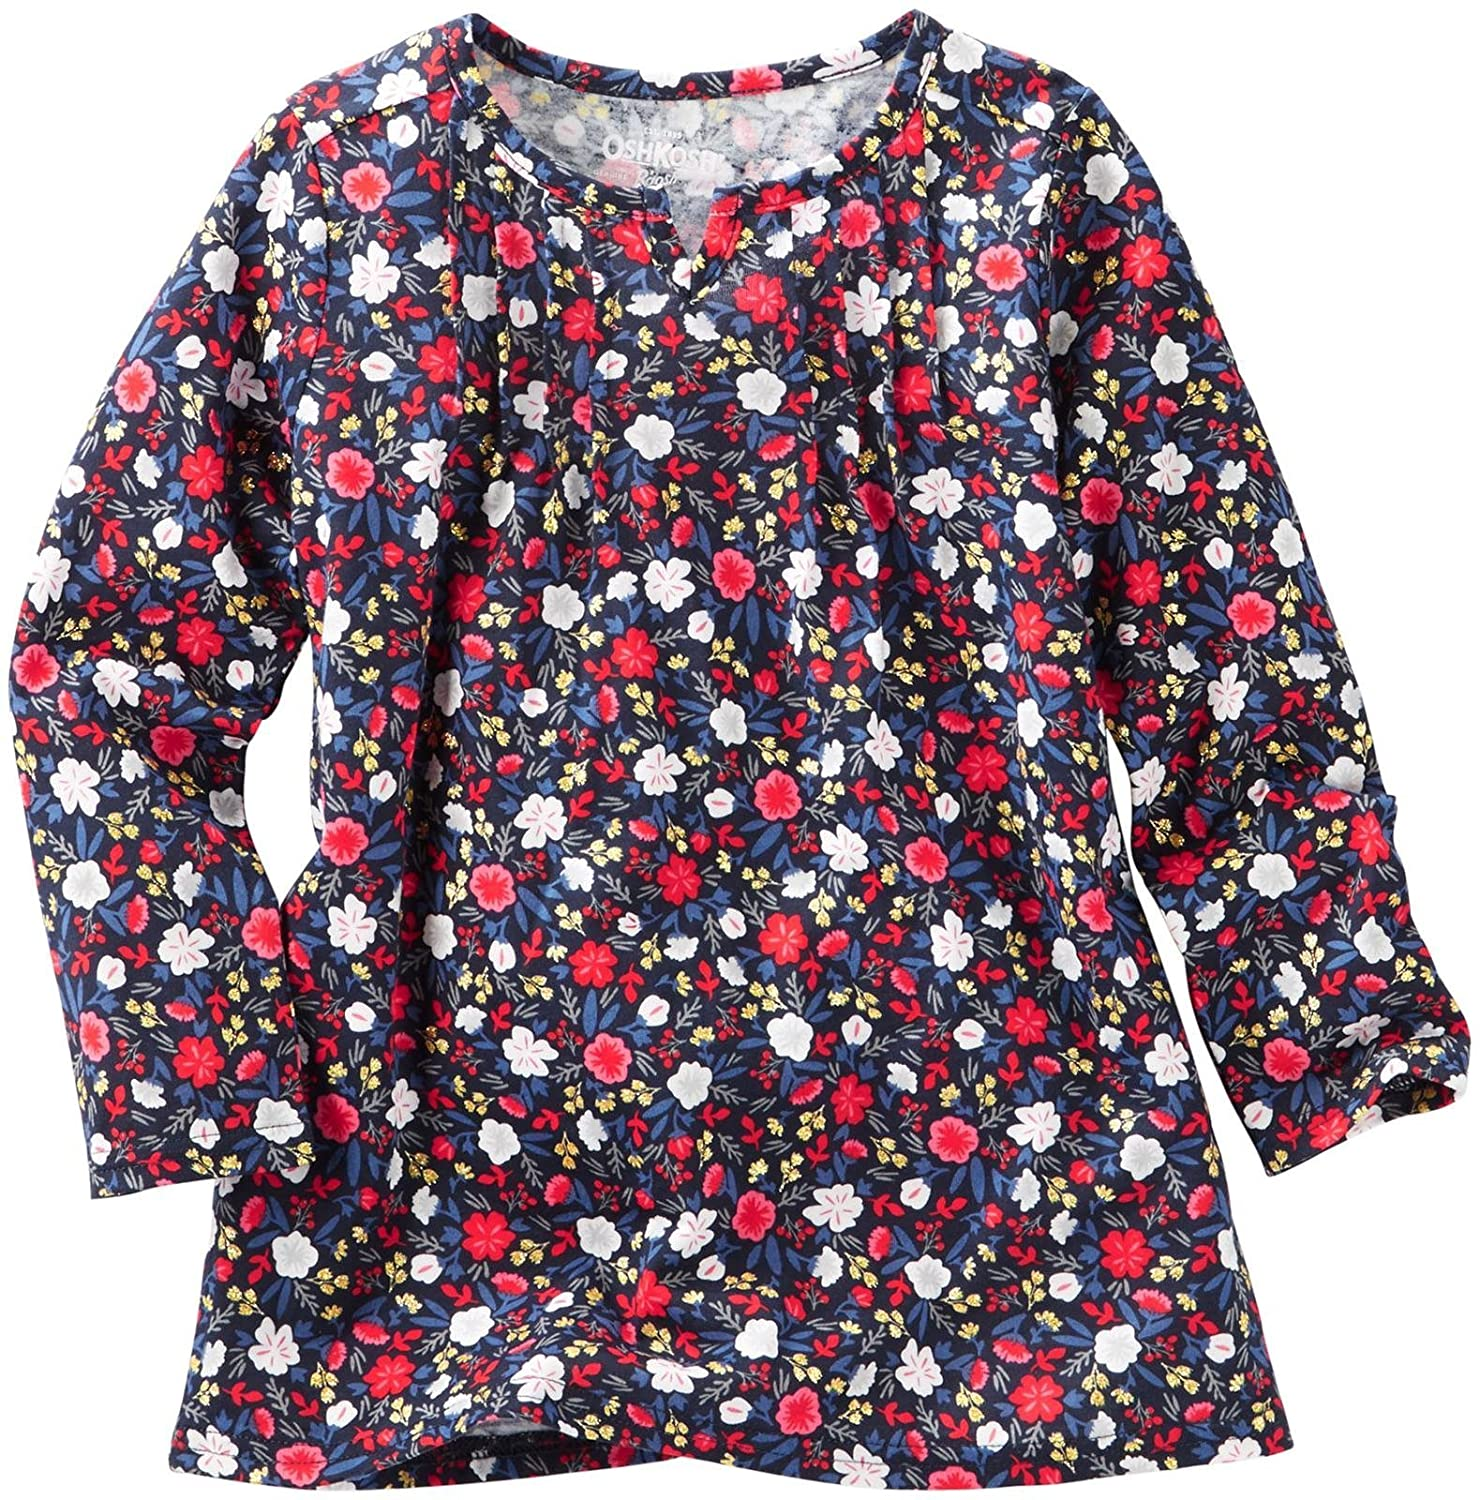 OshKosh BGosh Girls Knit Tunic 31437311